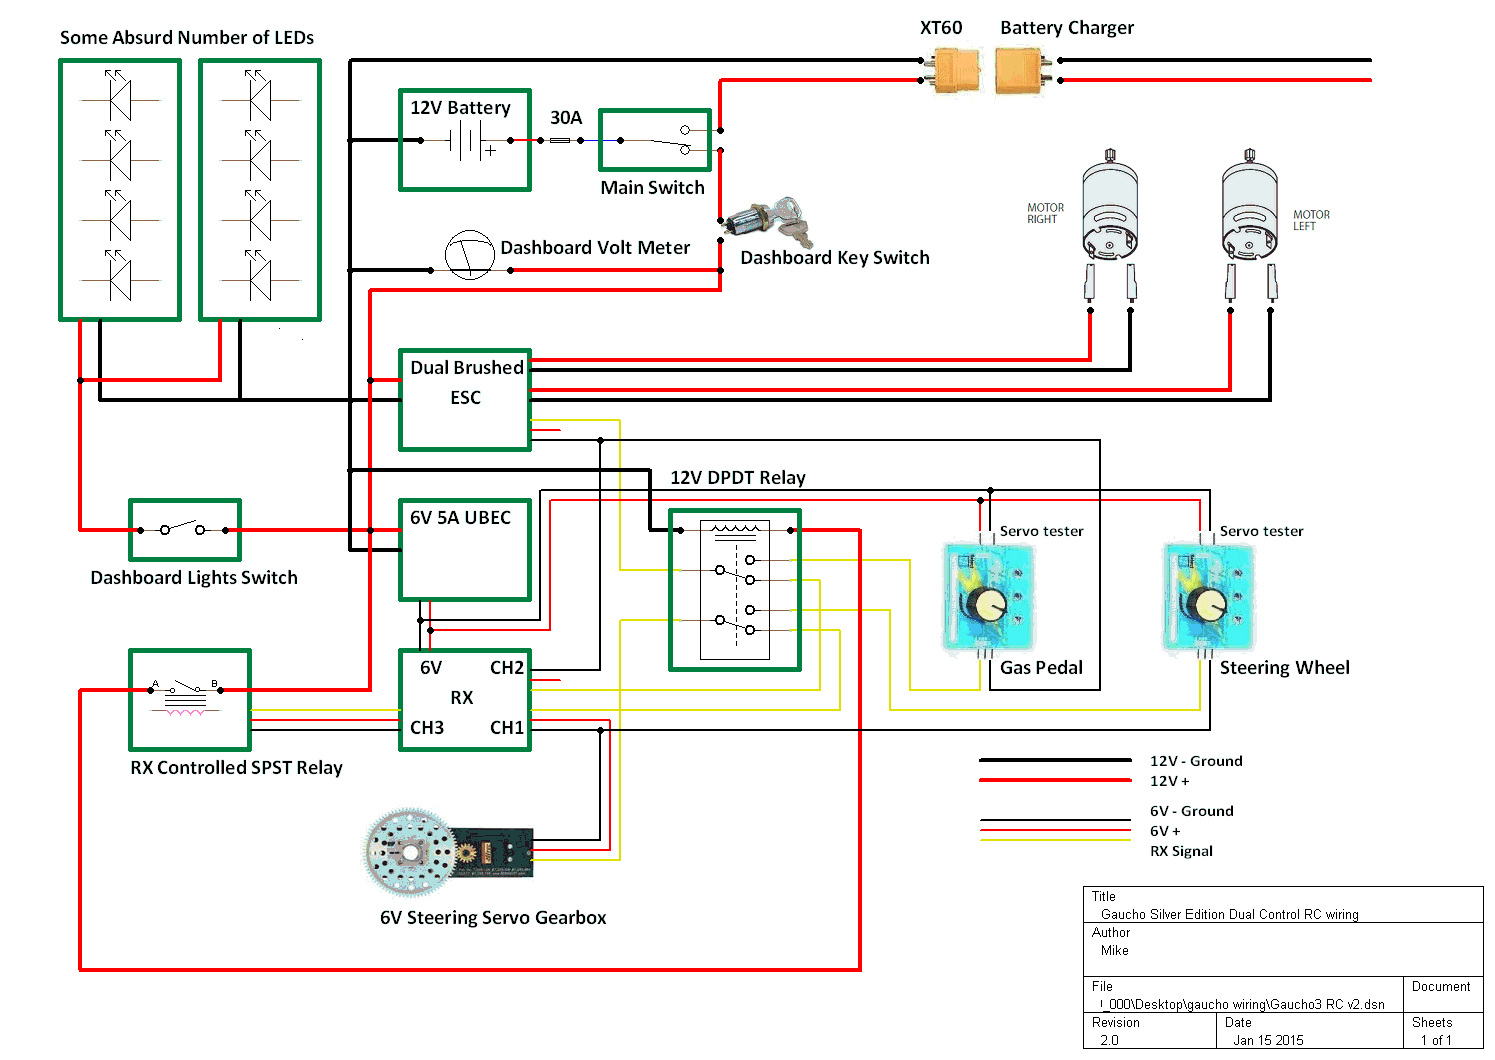 power wheels 6v wiring diagram square d motor starter and forum info on remote control manually